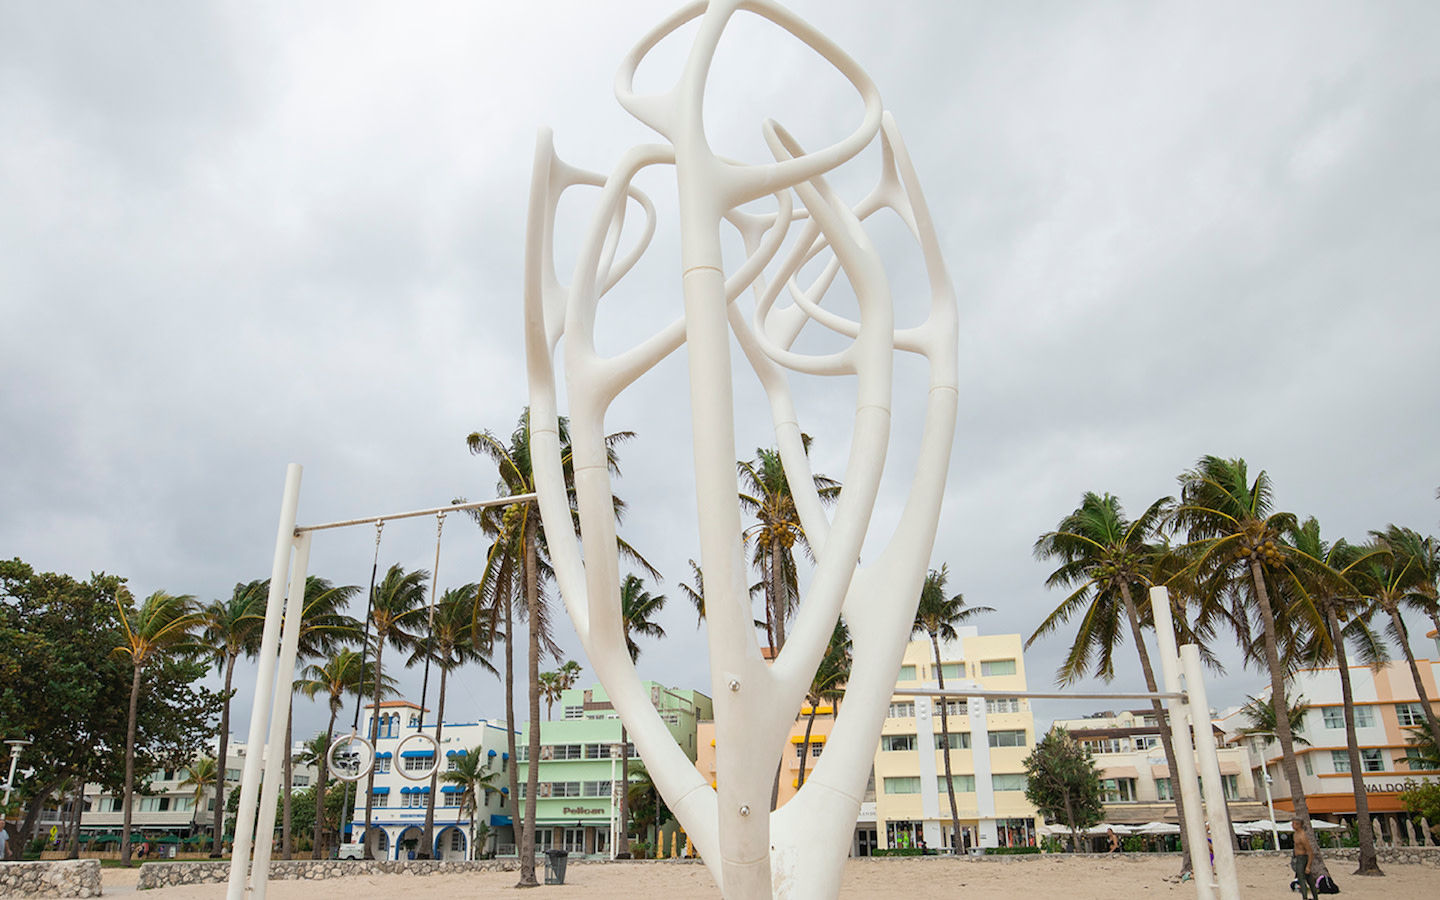 Sculpture at Lummus Park